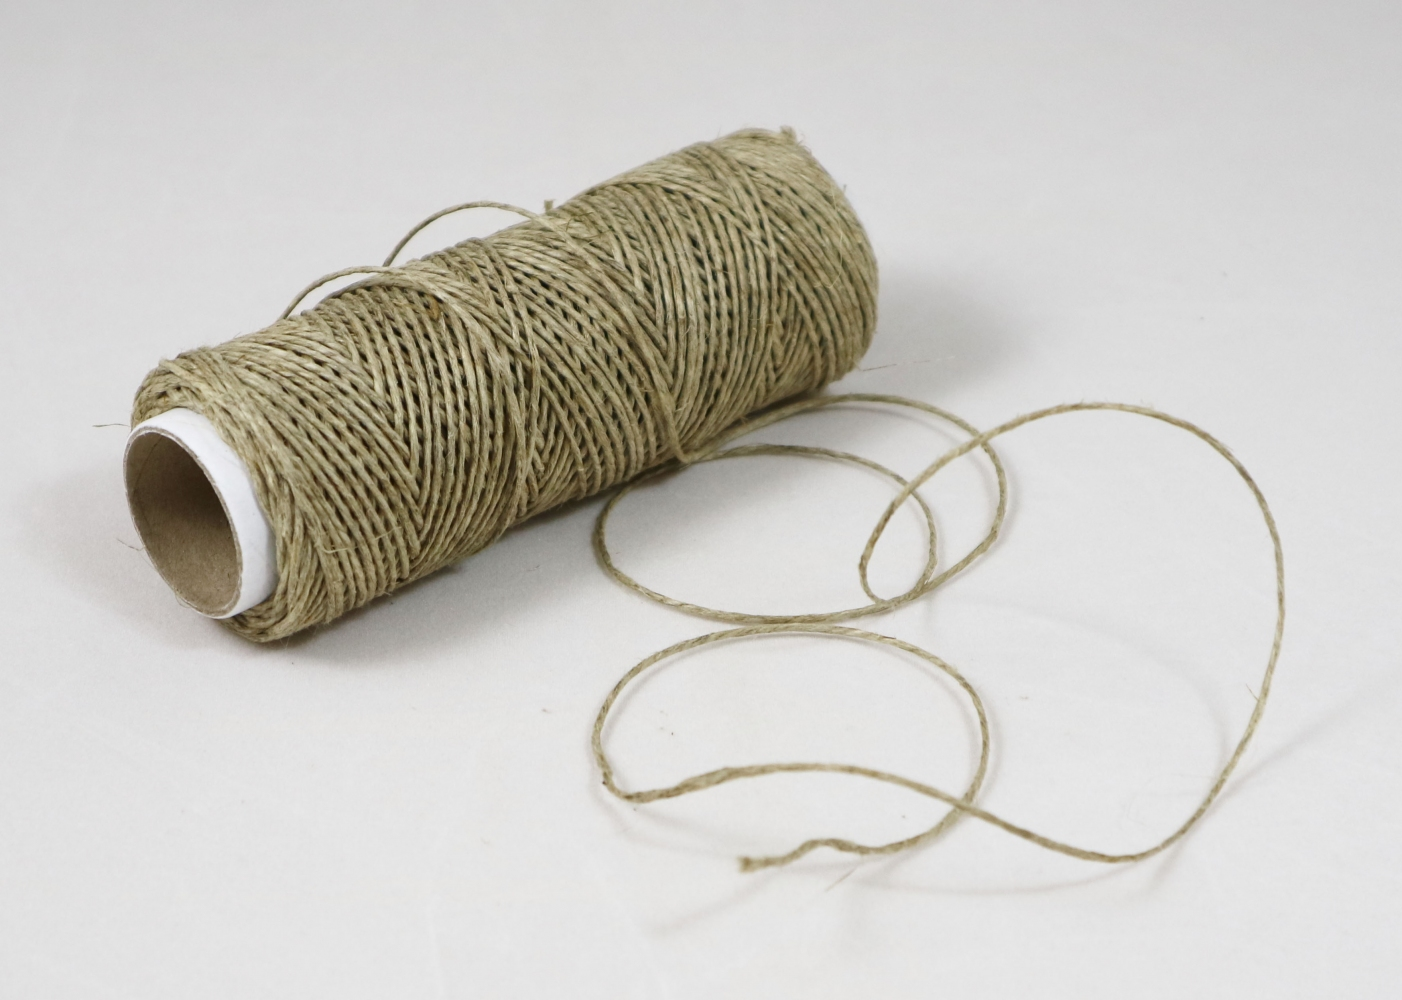 Polished linen twine, natural color, 50 meters - 1